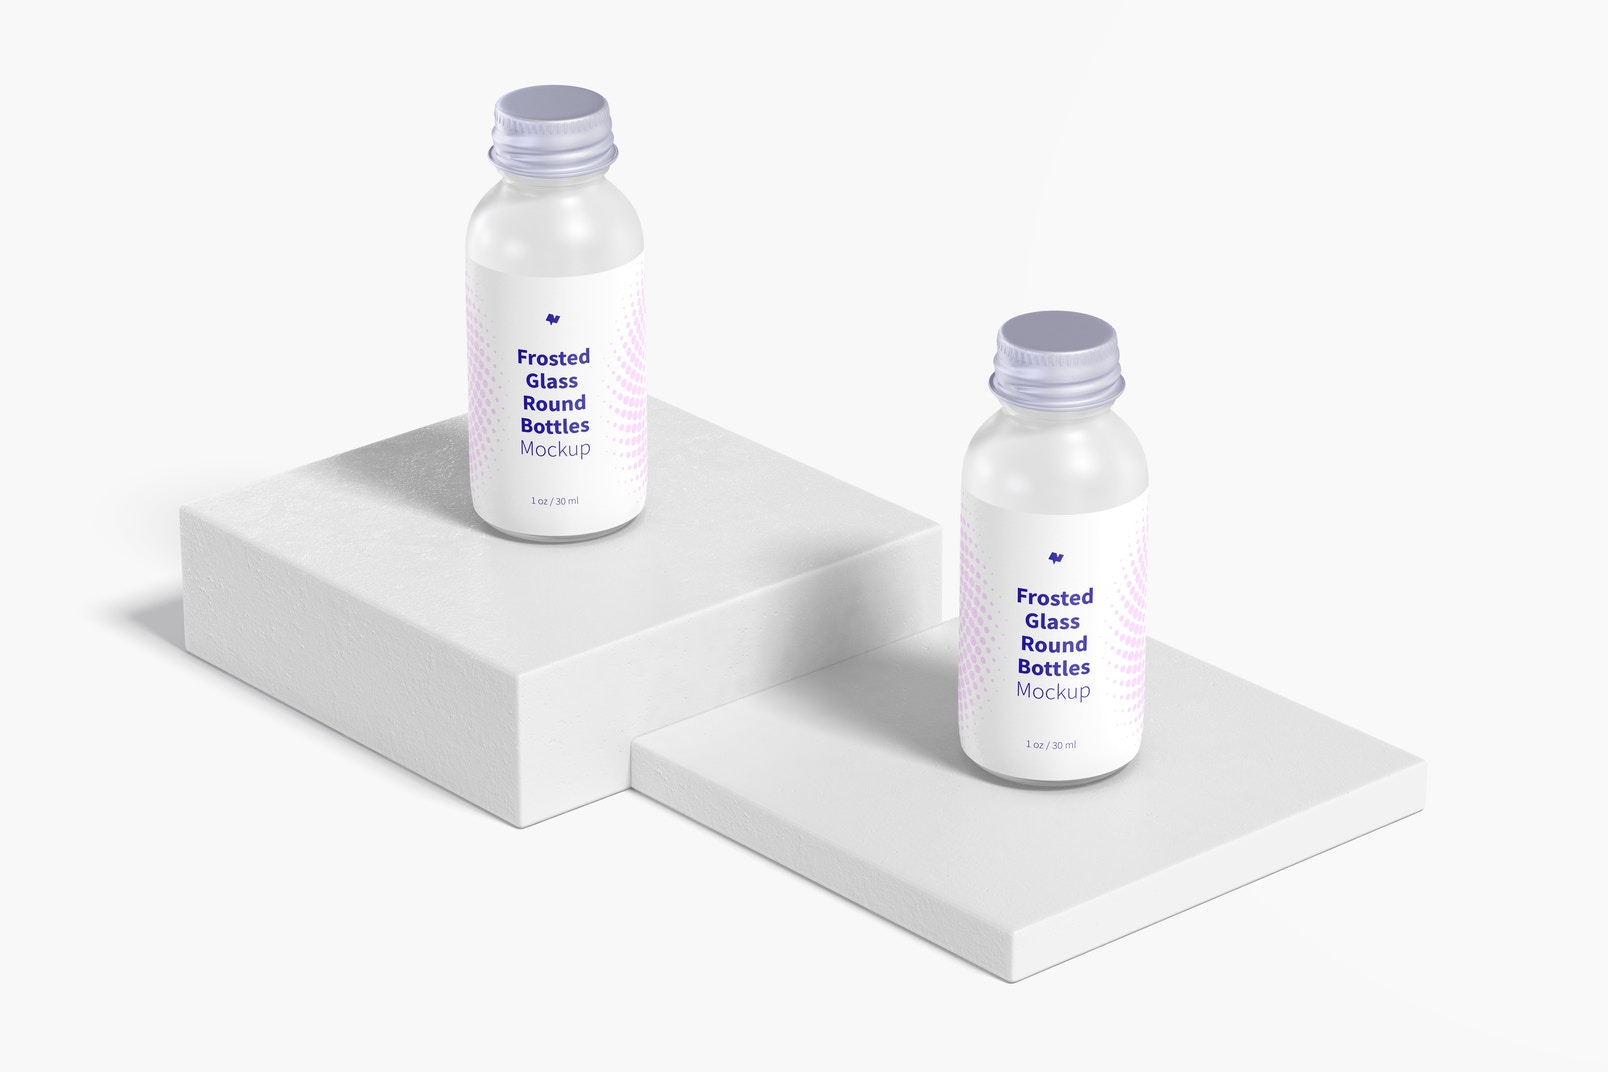 1 oz Frosted Glass Round Bottles Mockup, Perspective View